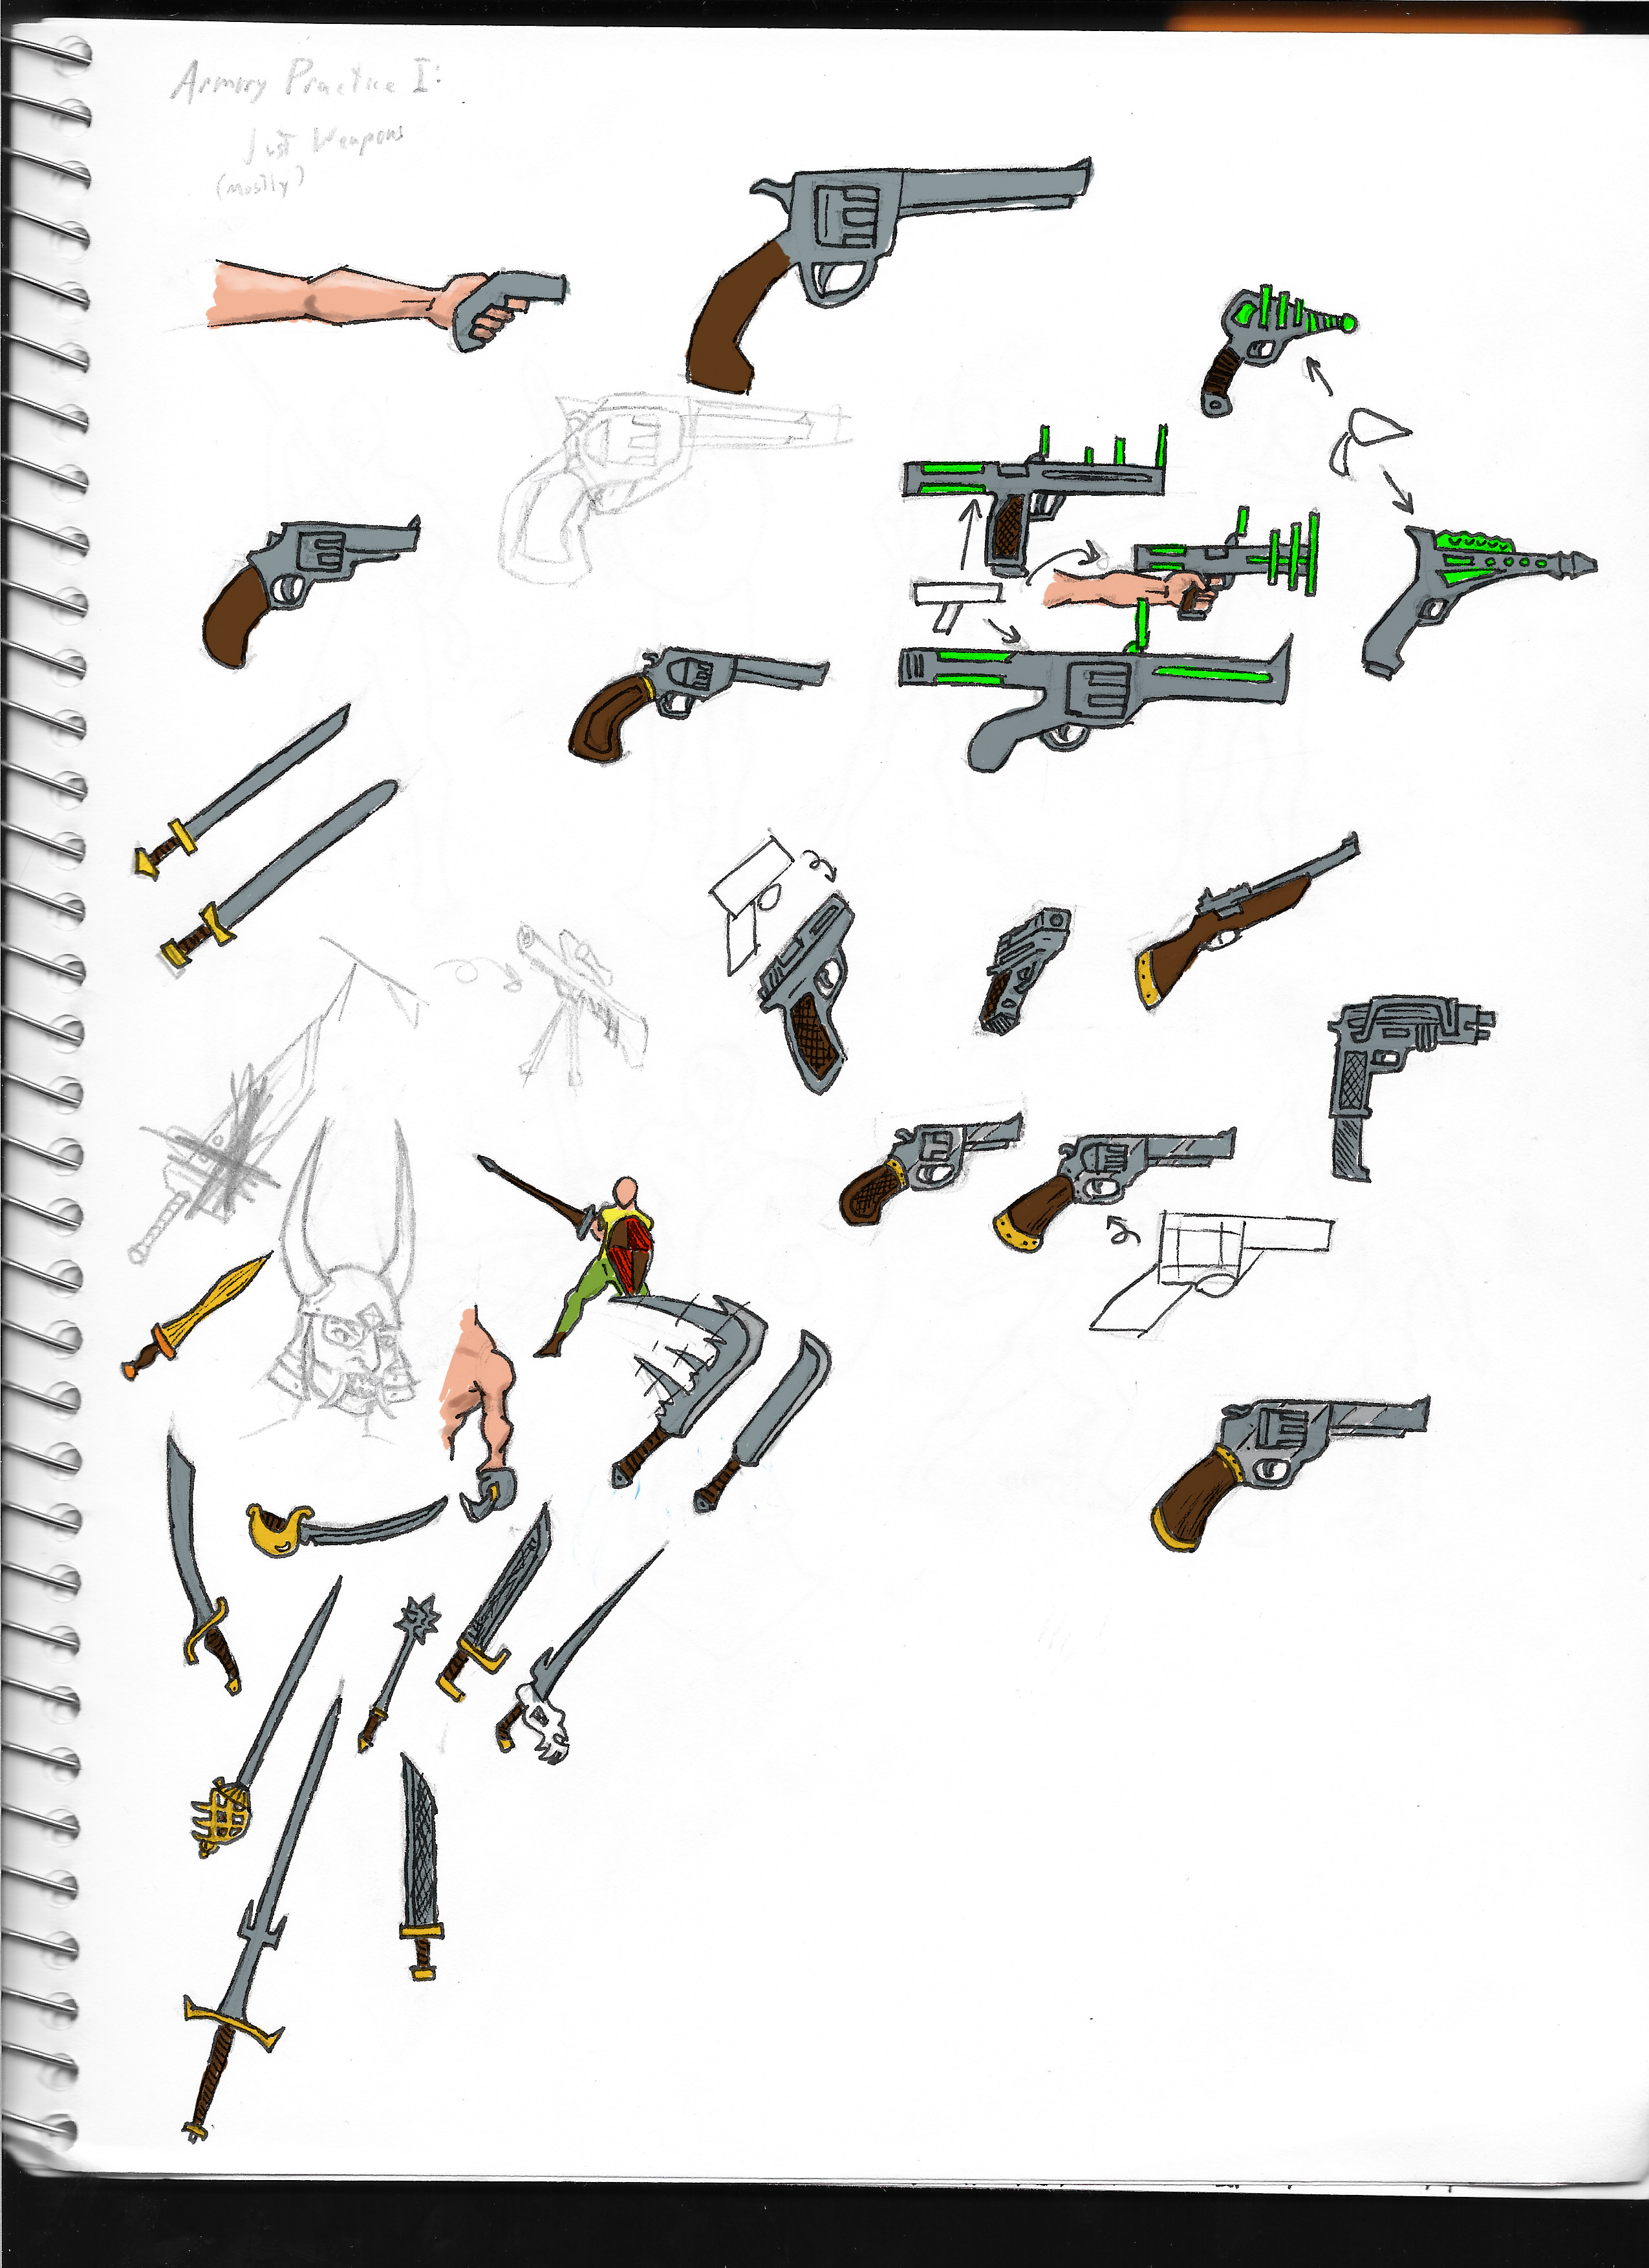 Practice: Armory 1 - Weapons